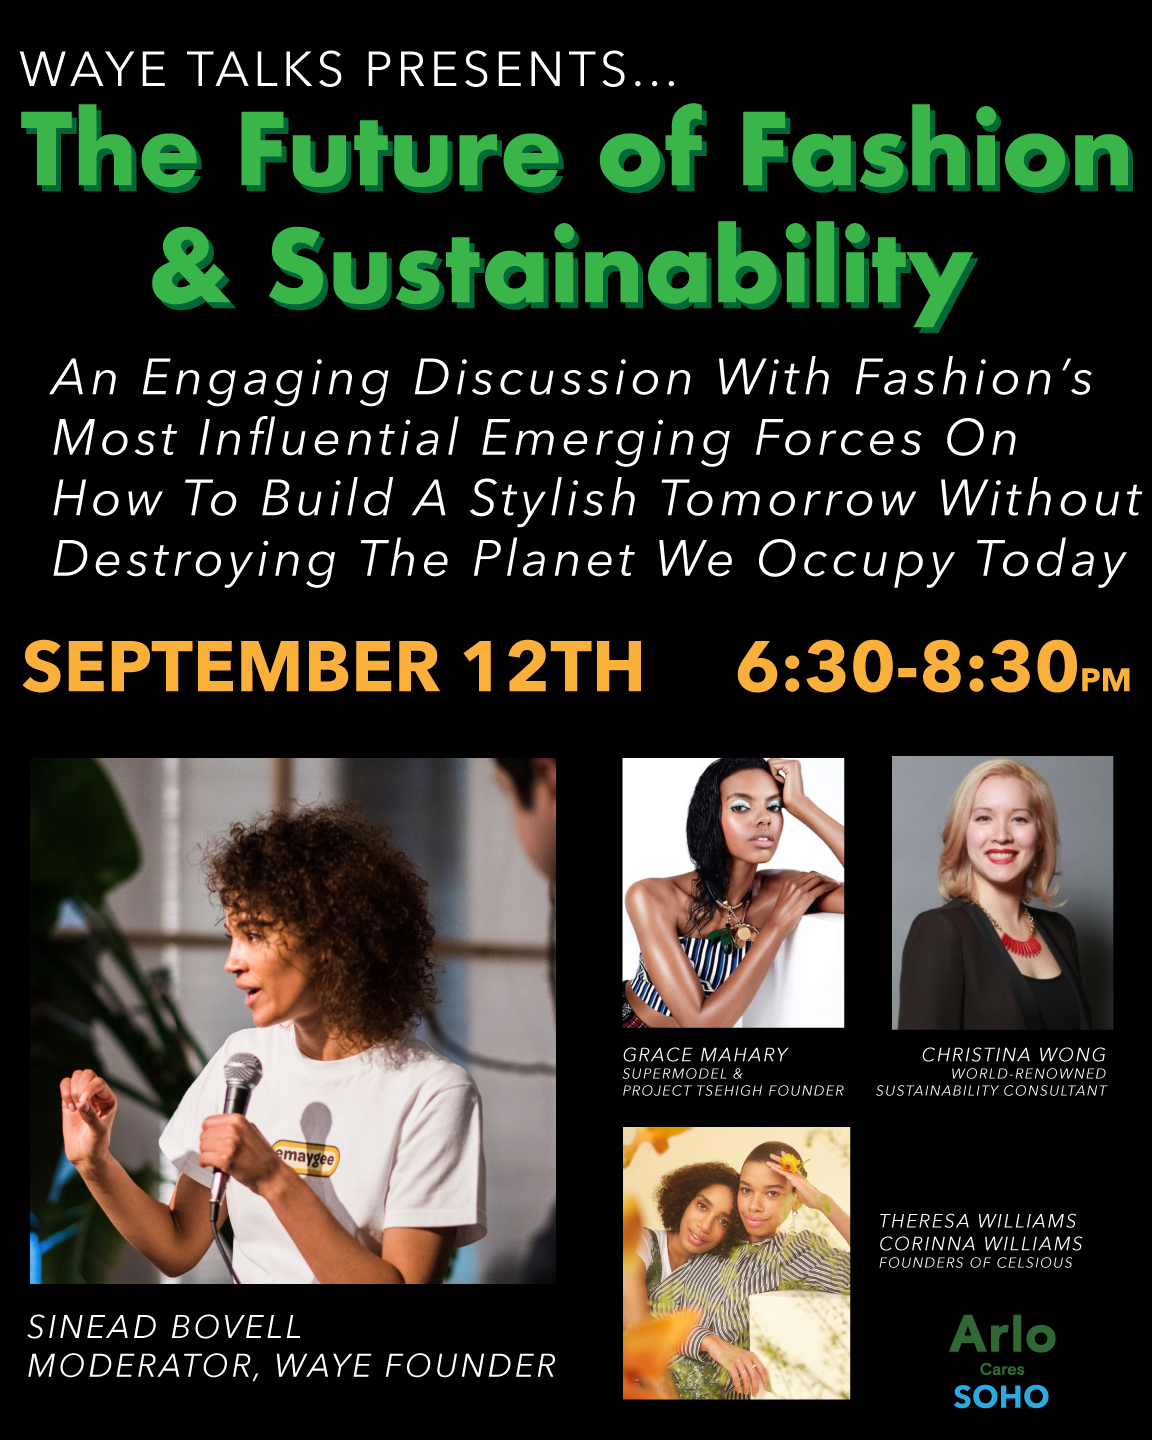 The Future of Fashion & Sustainability - Wednesday, September 12th 6:30-8:30pm